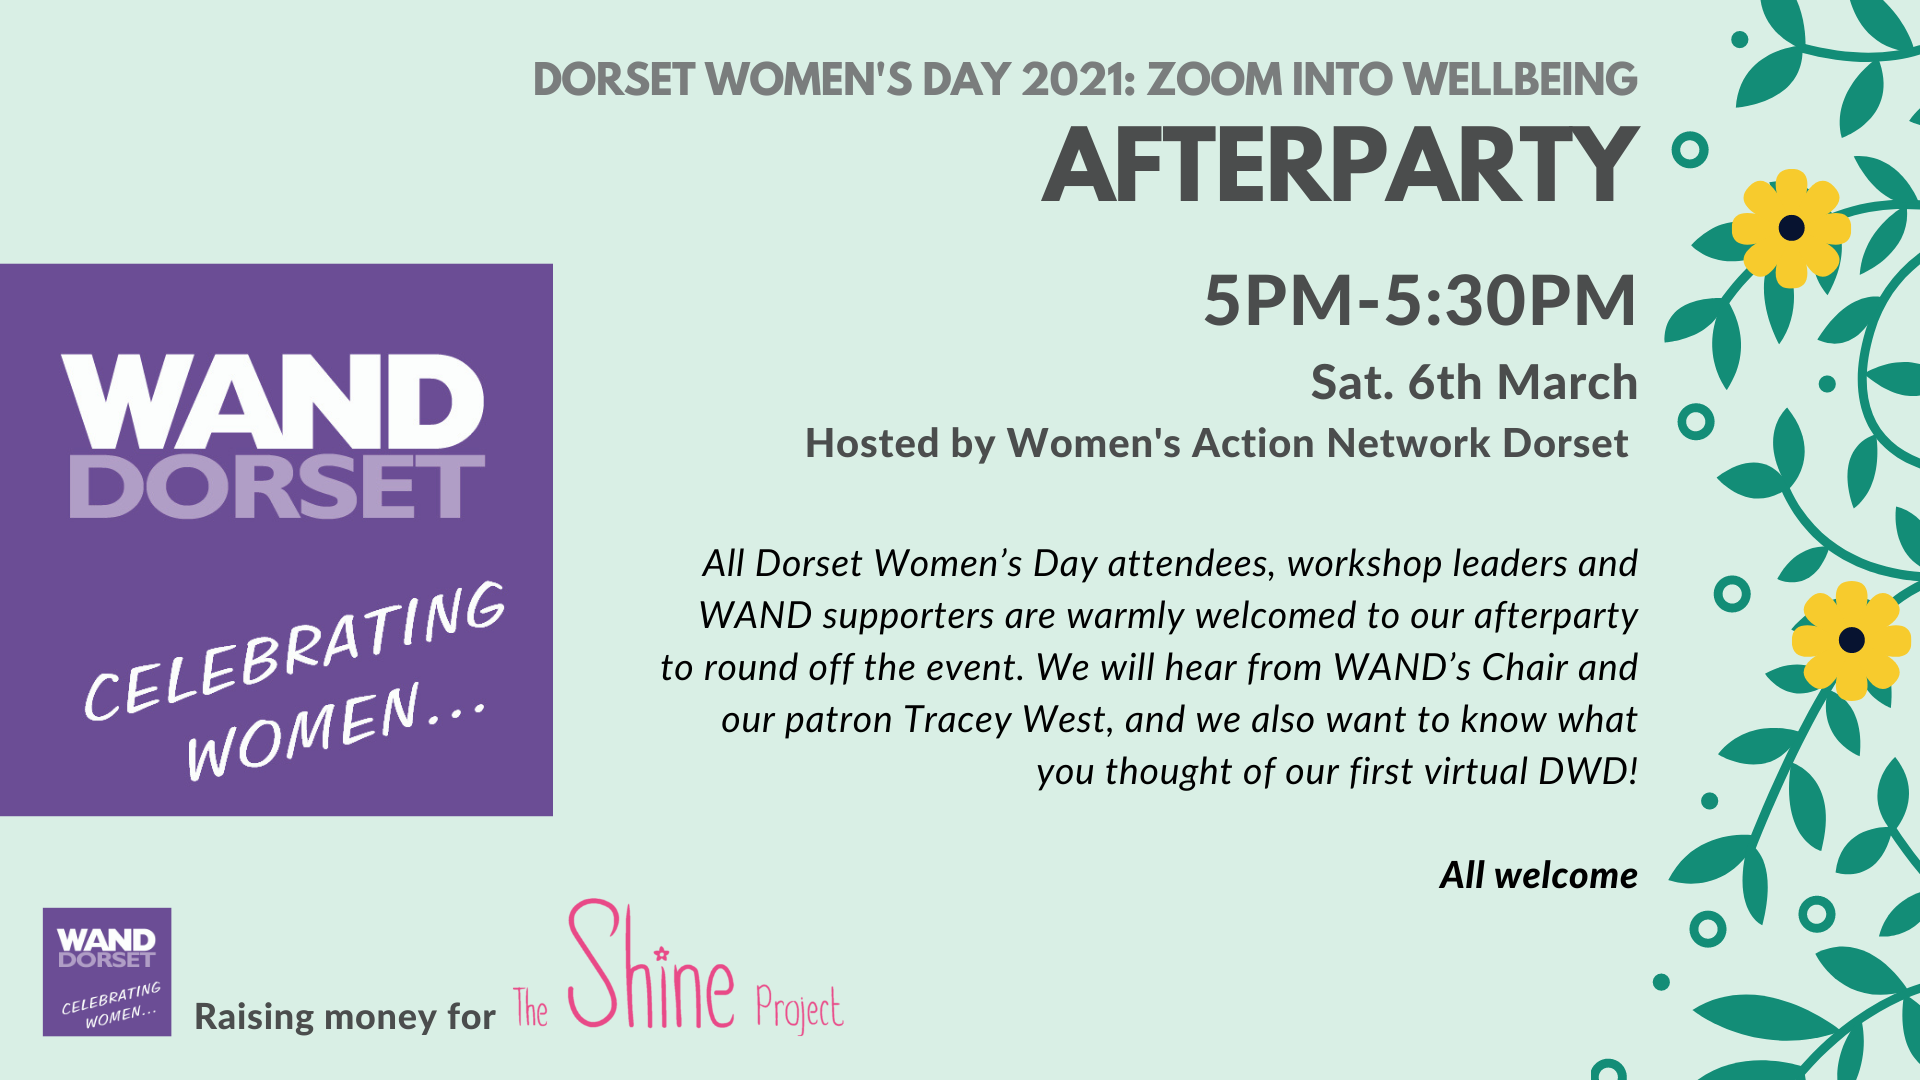 Dorset Women's Day 2021: After party!